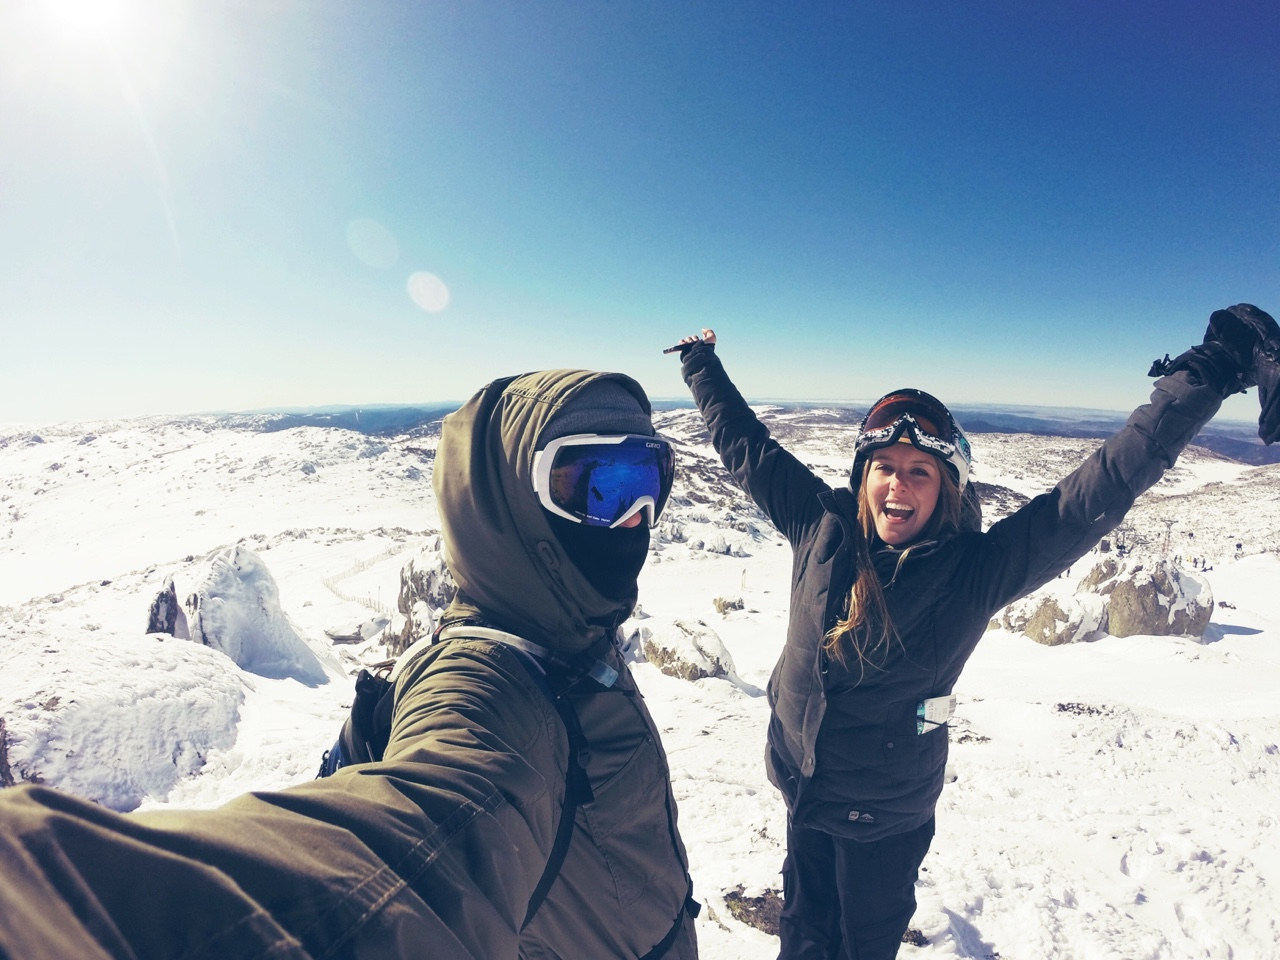 Are you looking for Valentine's Day Date Ideas Perfect for Cold Weather? You don't have to stay inside on Valentine's Day, get out there with these ideas!